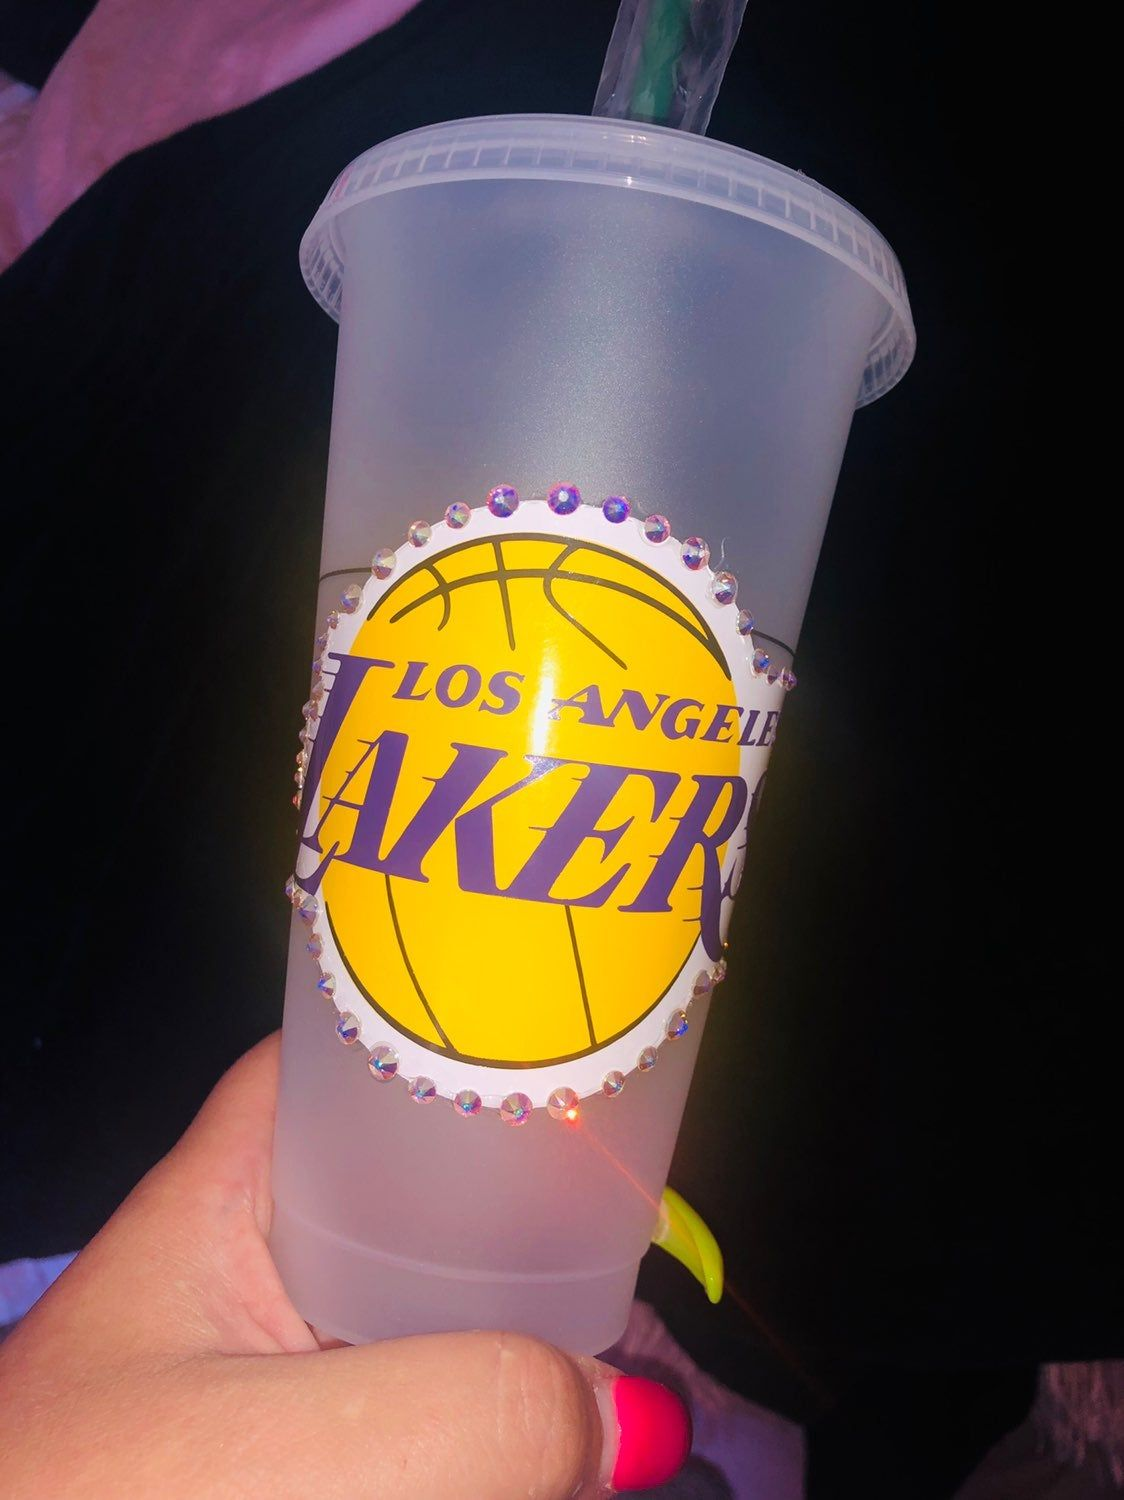 Lakers Starbucks Reusable Cup Venti Size Handmade With Swarovski Crystals And Permanent Layered Vinyl Ca Starbucks Cups Personalized Starbucks Cup Custom Cups